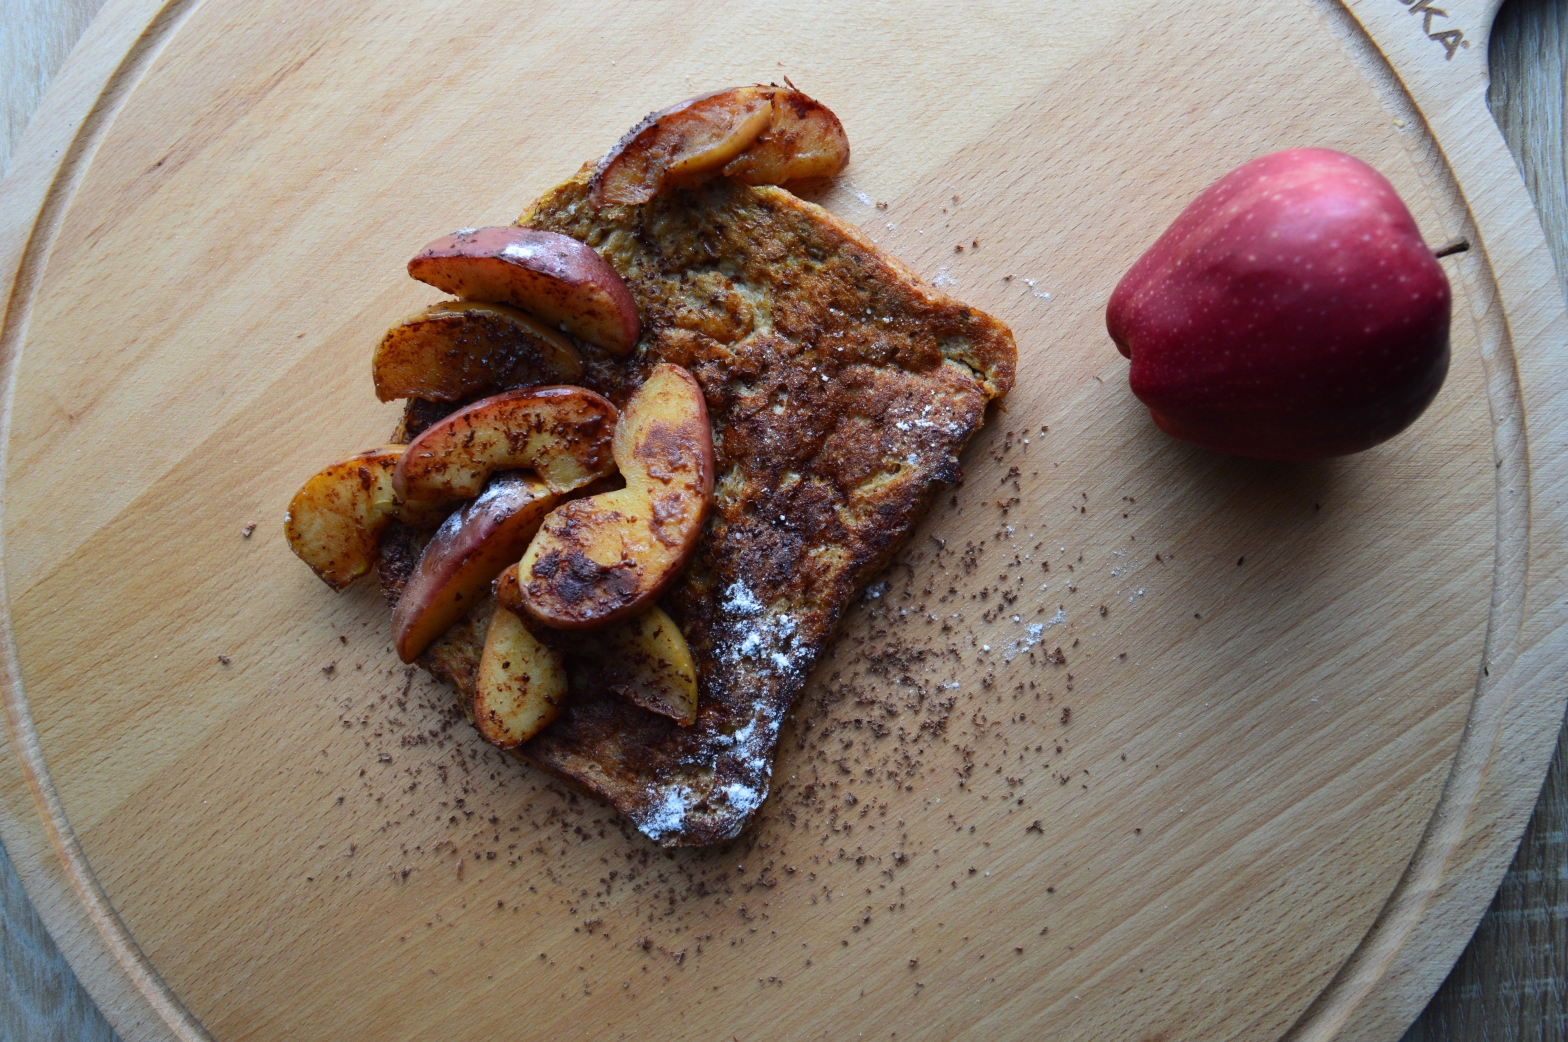 French toast on a wooden cutting board with sliced cinnamon apples and powdered sugar